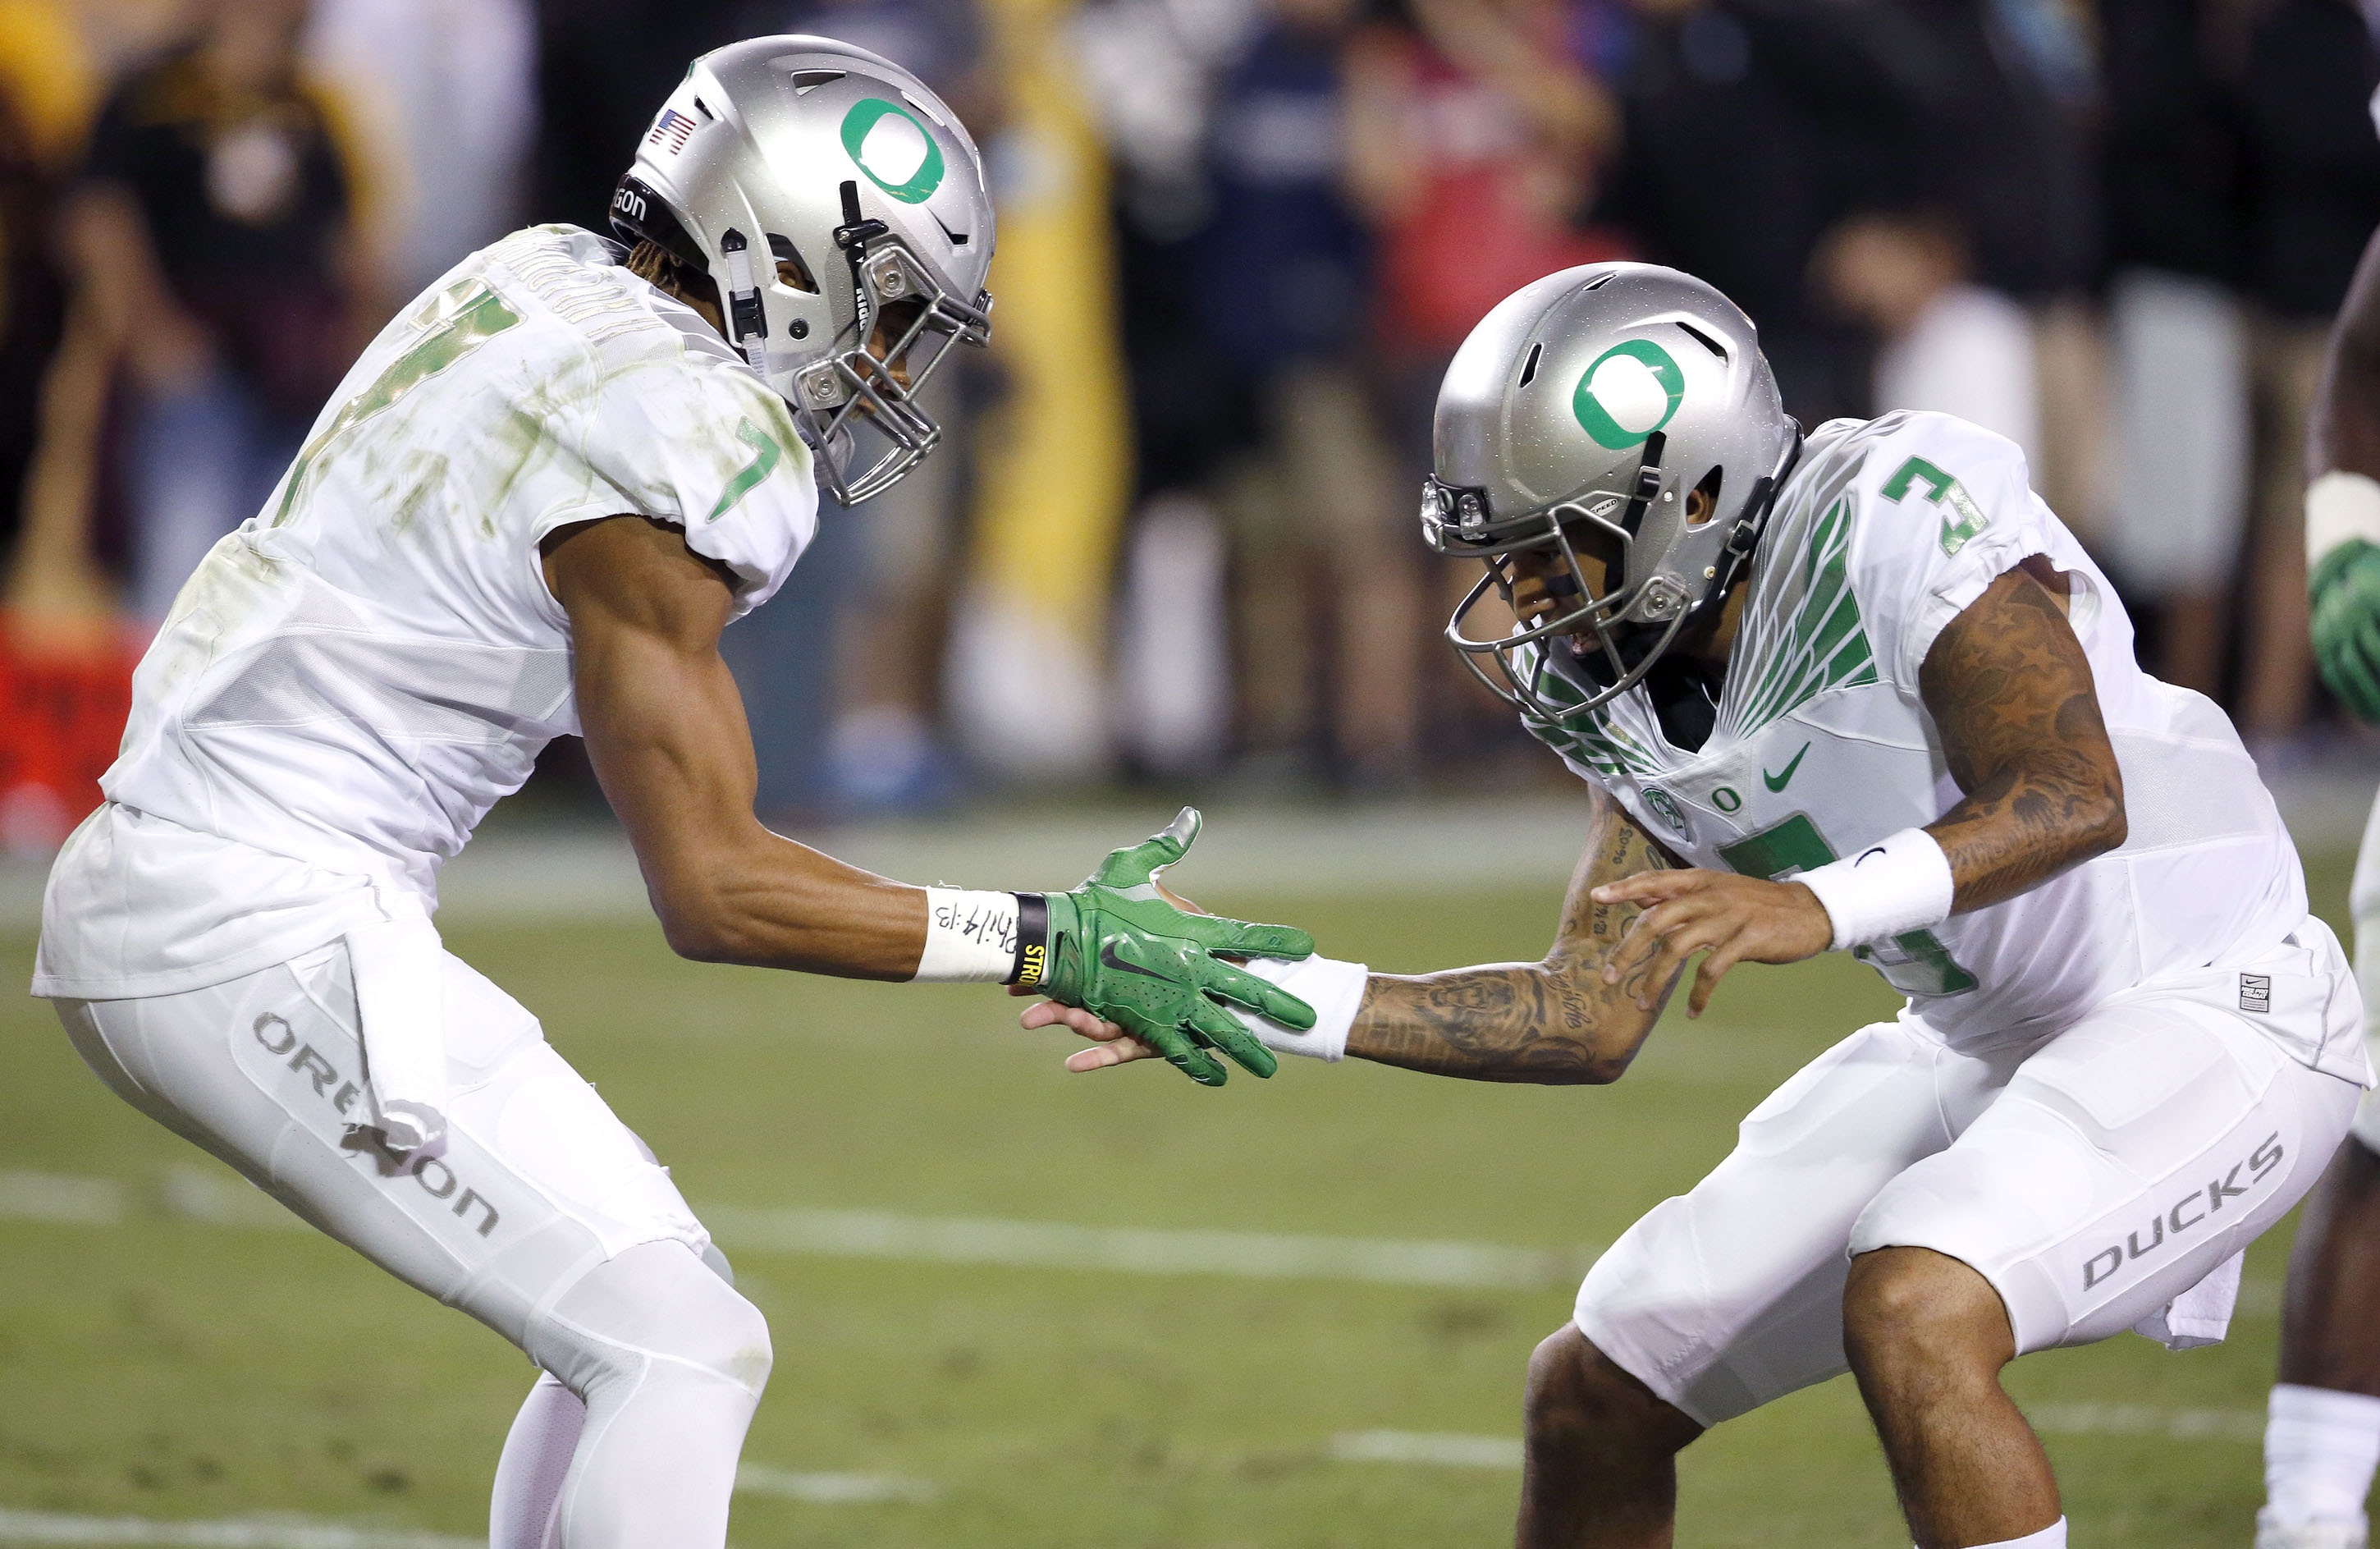 Oregon's Darren Carrington (7) celebrates his touchdown catch against Arizona State with quarterback Vernon Adams Jr. (3) during the first half of an NCAA college football game Thursday, Oct. 29, 2015, in Tempe, Ariz. (AP Photo/Ross D. Franklin)